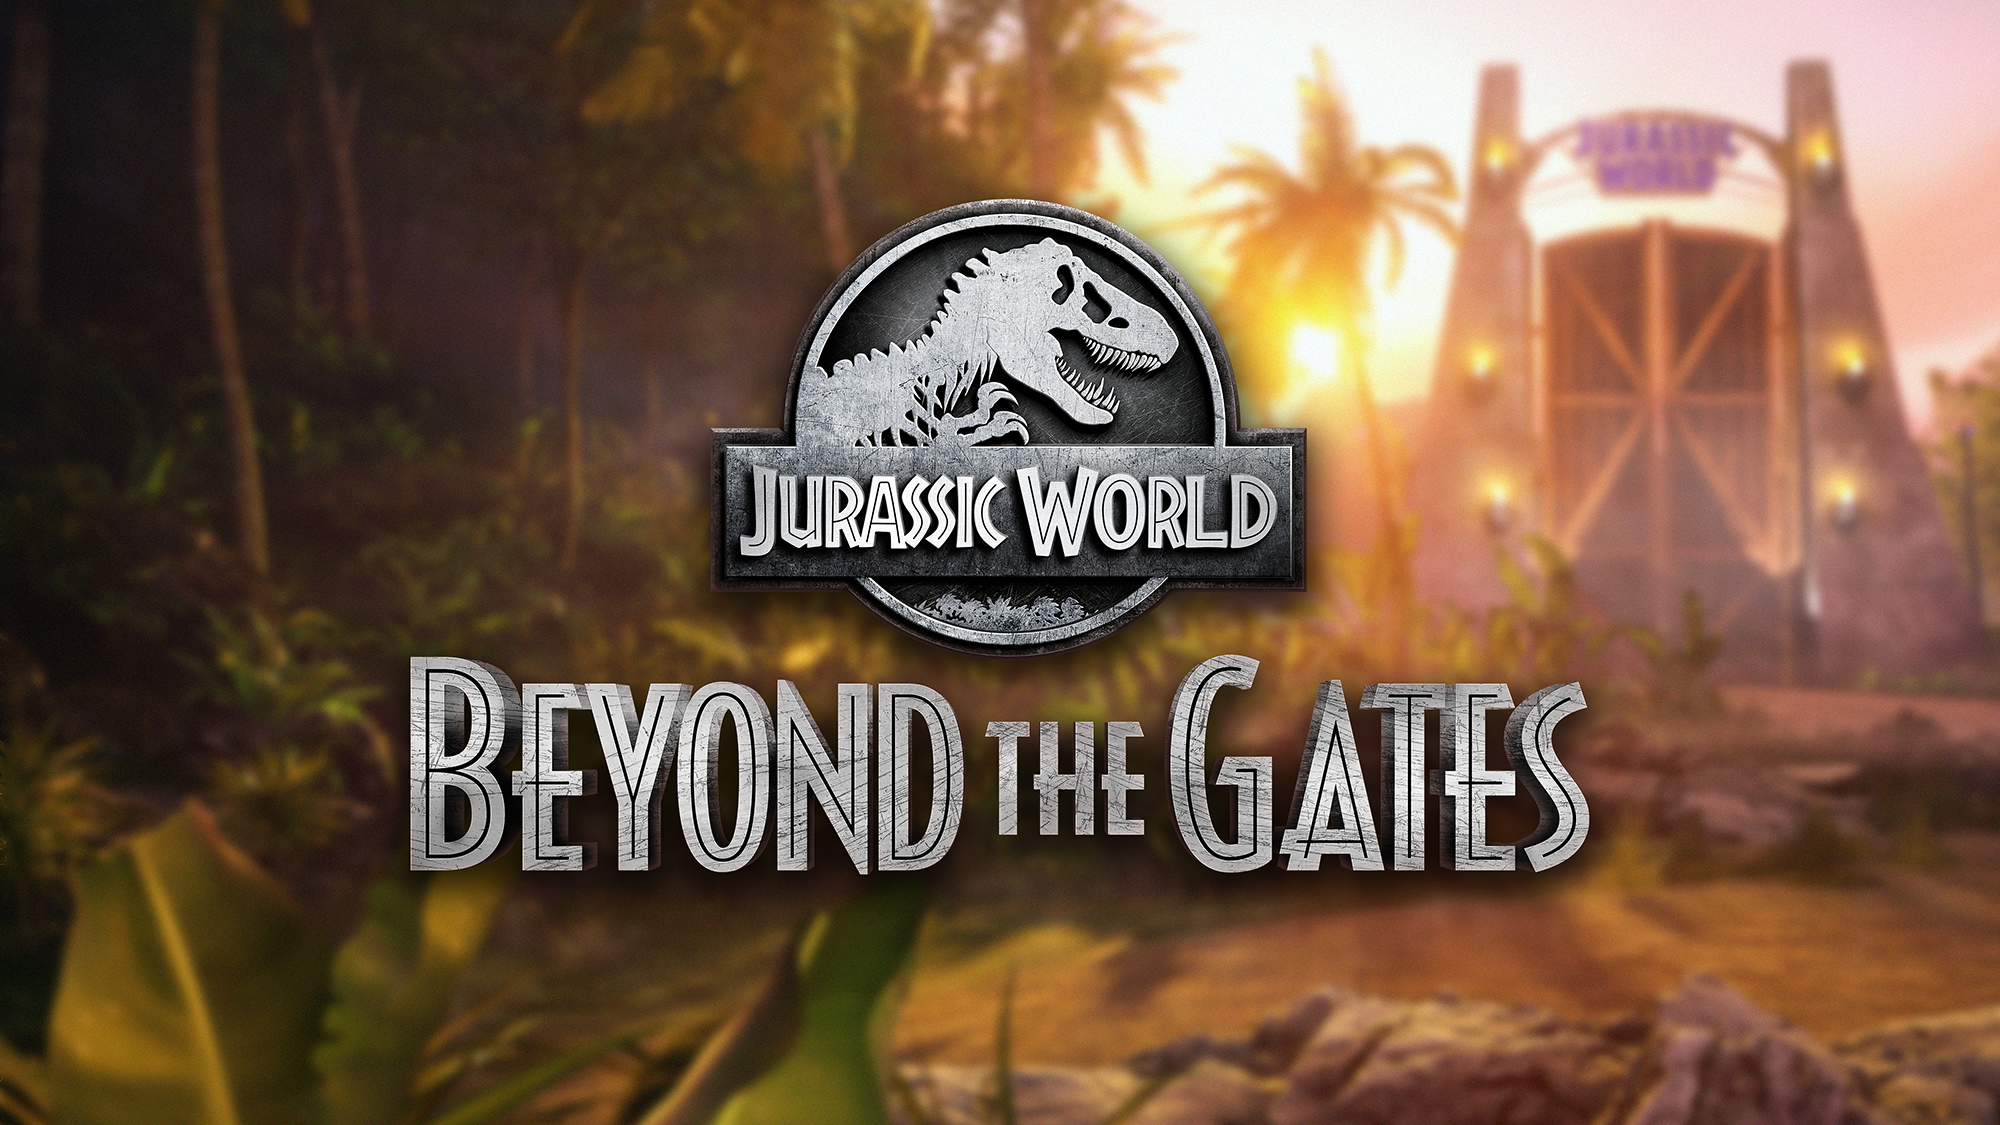 Introducing 'Jurassic World Beyond the Gates' – Live Now on Target.com!